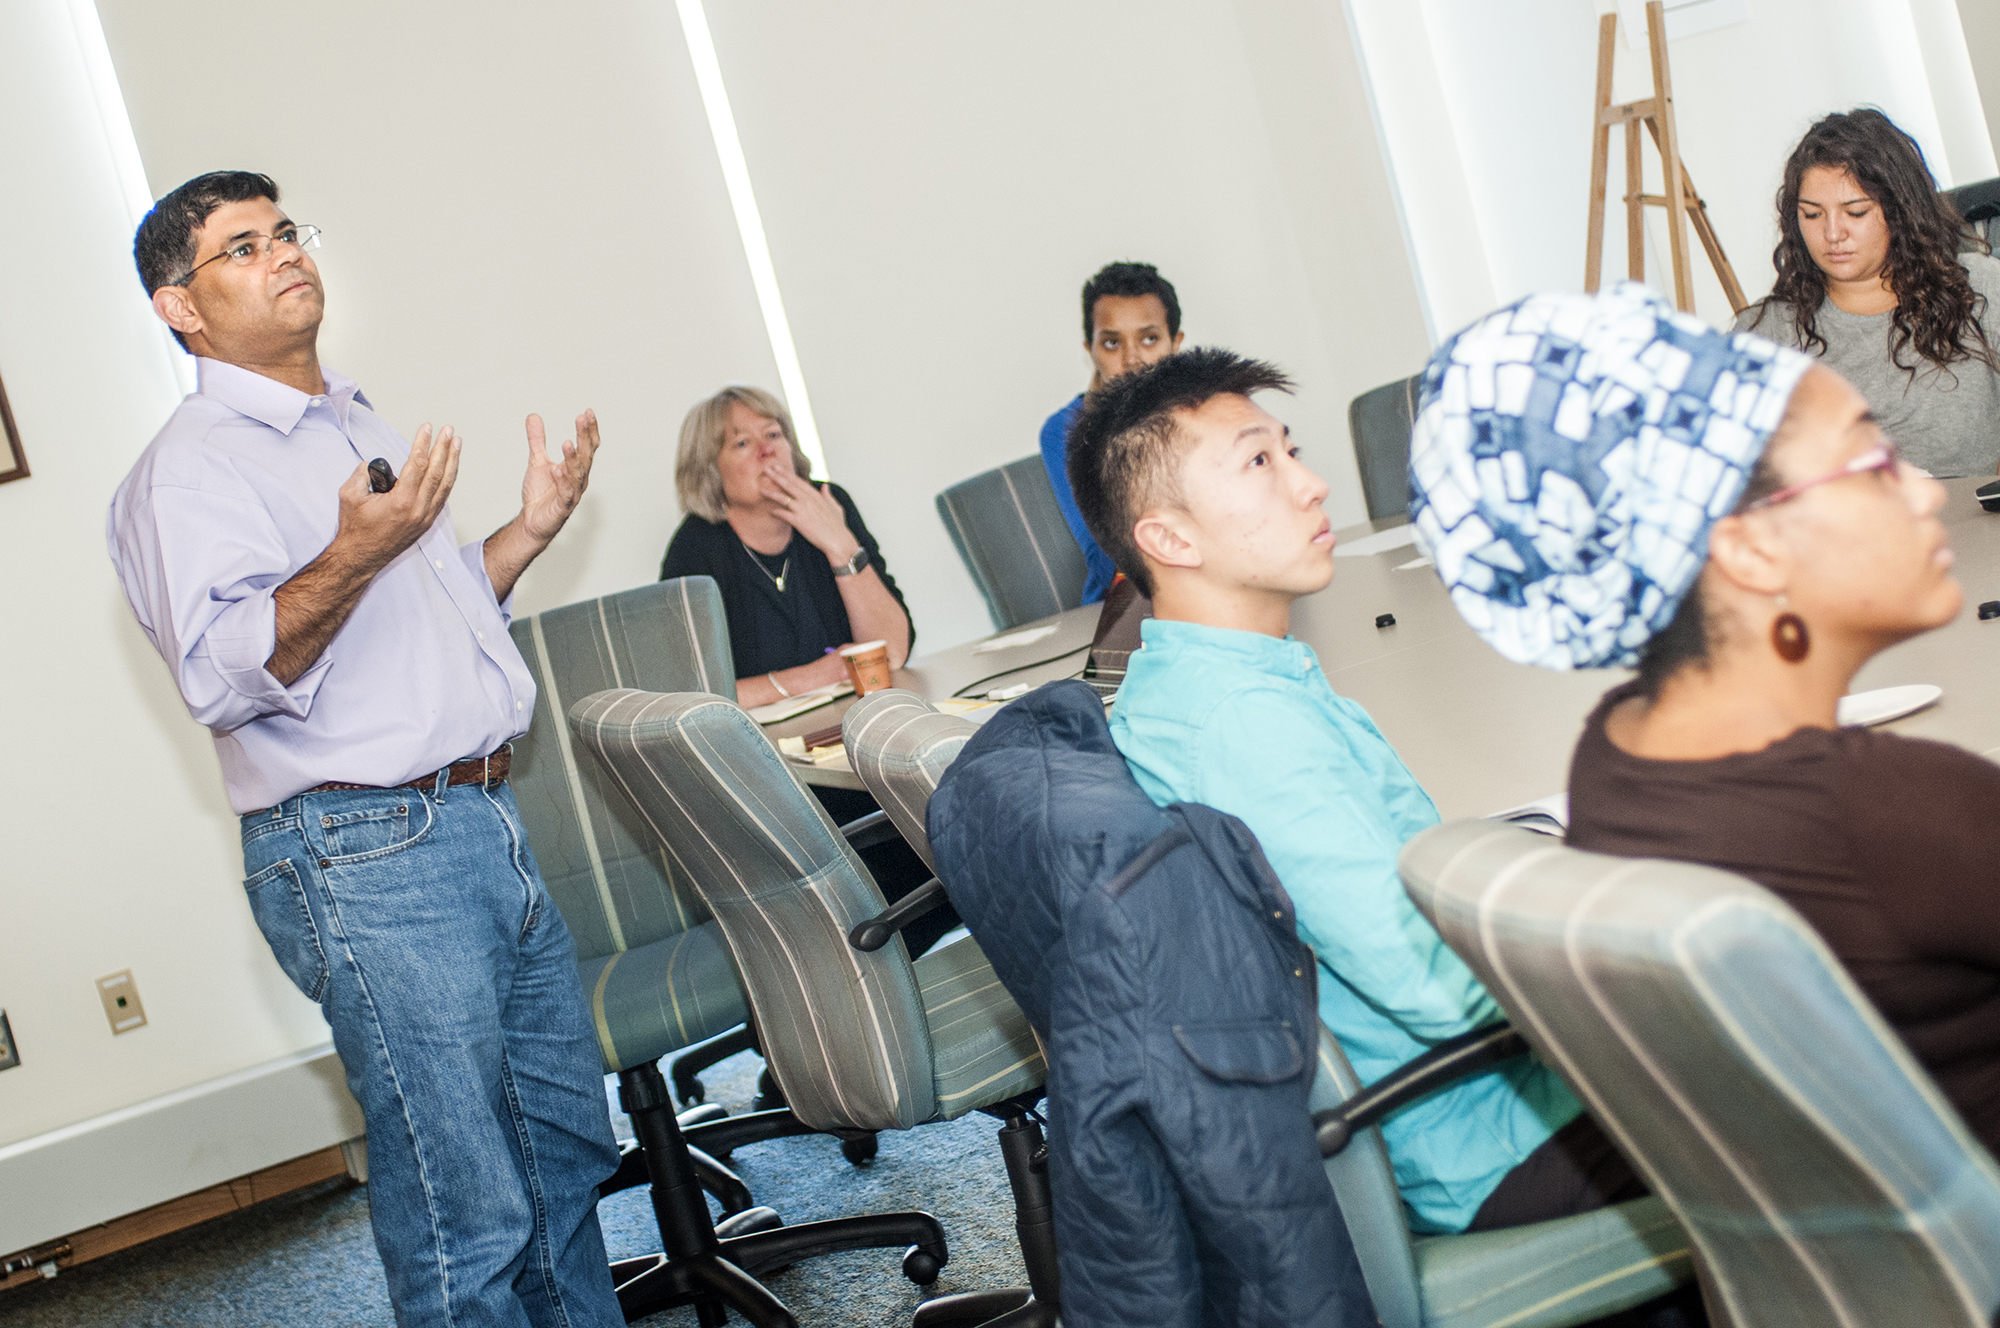 Levitt Center innovator-in-residence Cyrus Boga '90 directs a workshop for students.